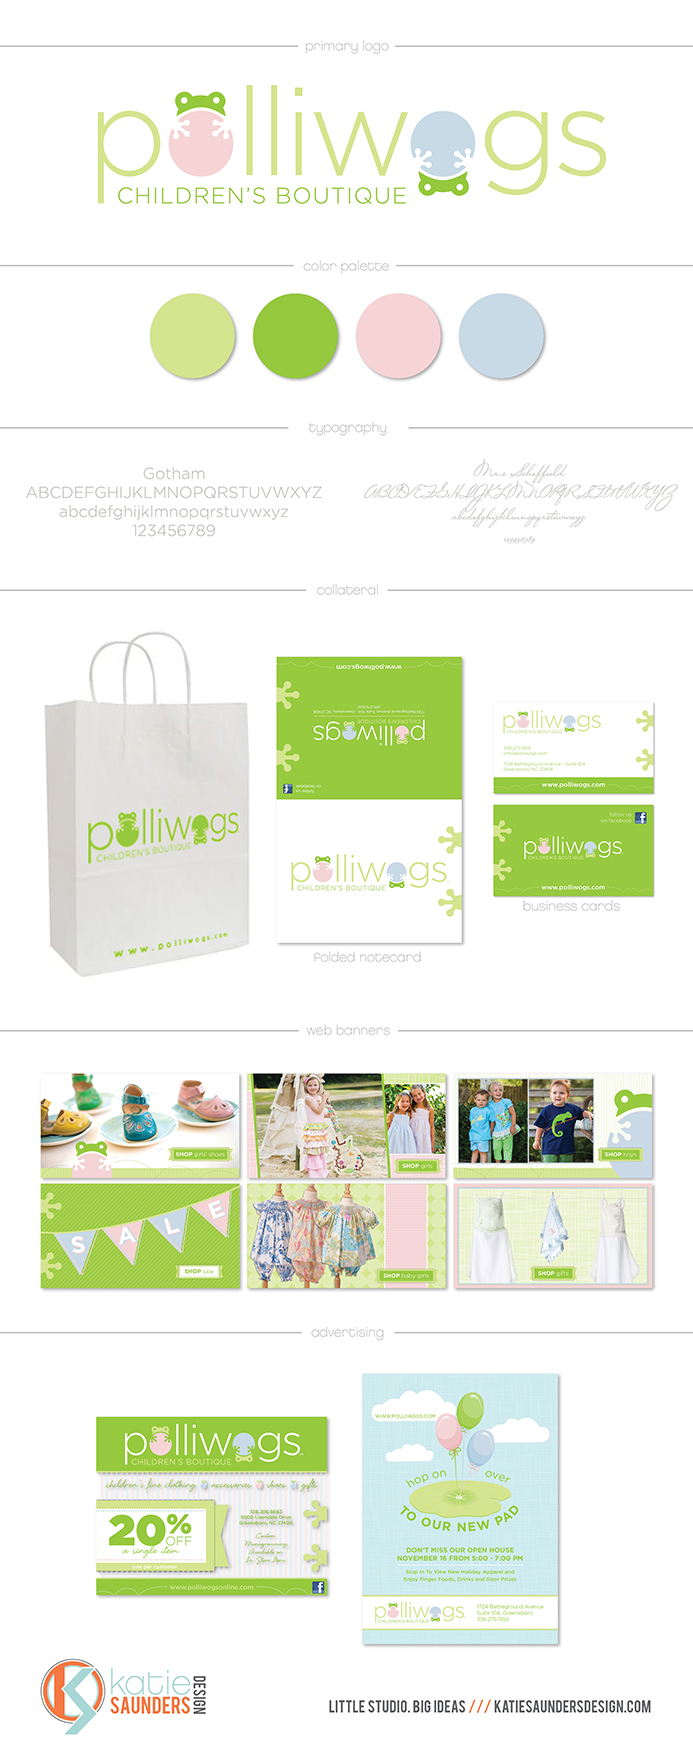 polliwogs, kids, children, childrens boutique, clothing, shoes, logo, design, branding, font, typography, collateral, promotion, web banners, web design, advertisement, postcard, color scheme, business card, stationery, notecard